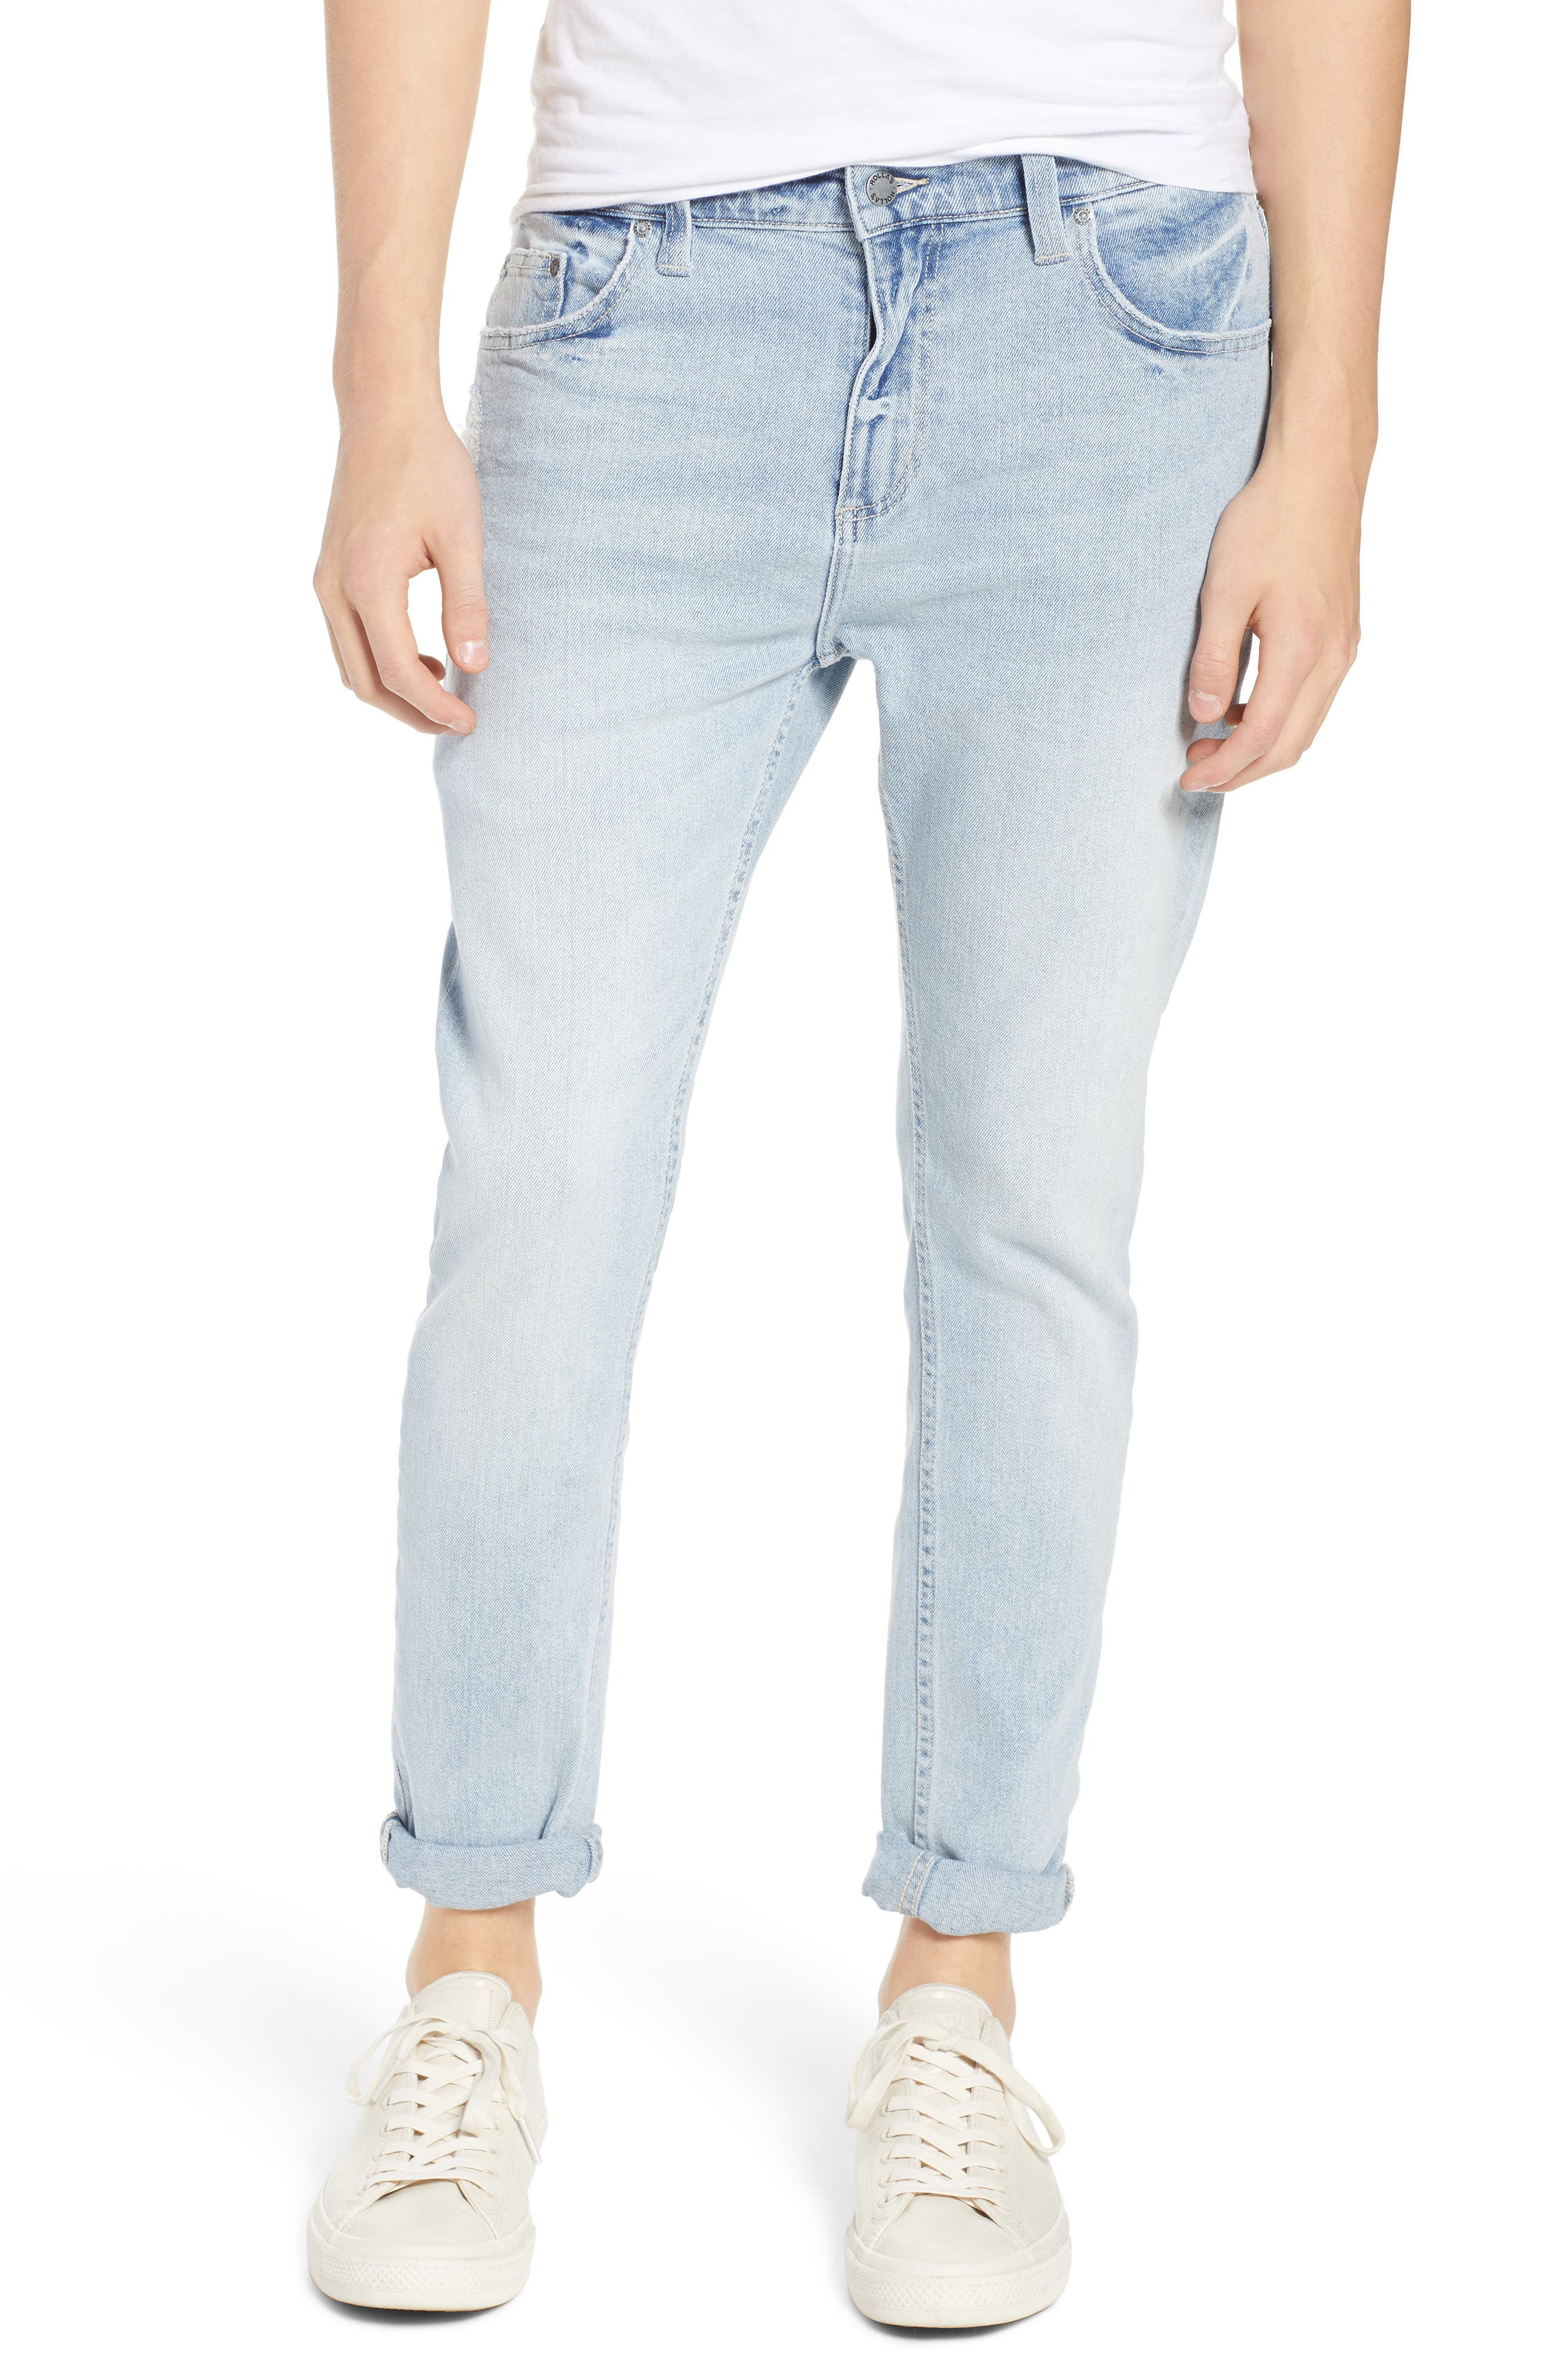 Rollies Slim Fit Jeans,                         Main,                         color, WATEGOS BLUE